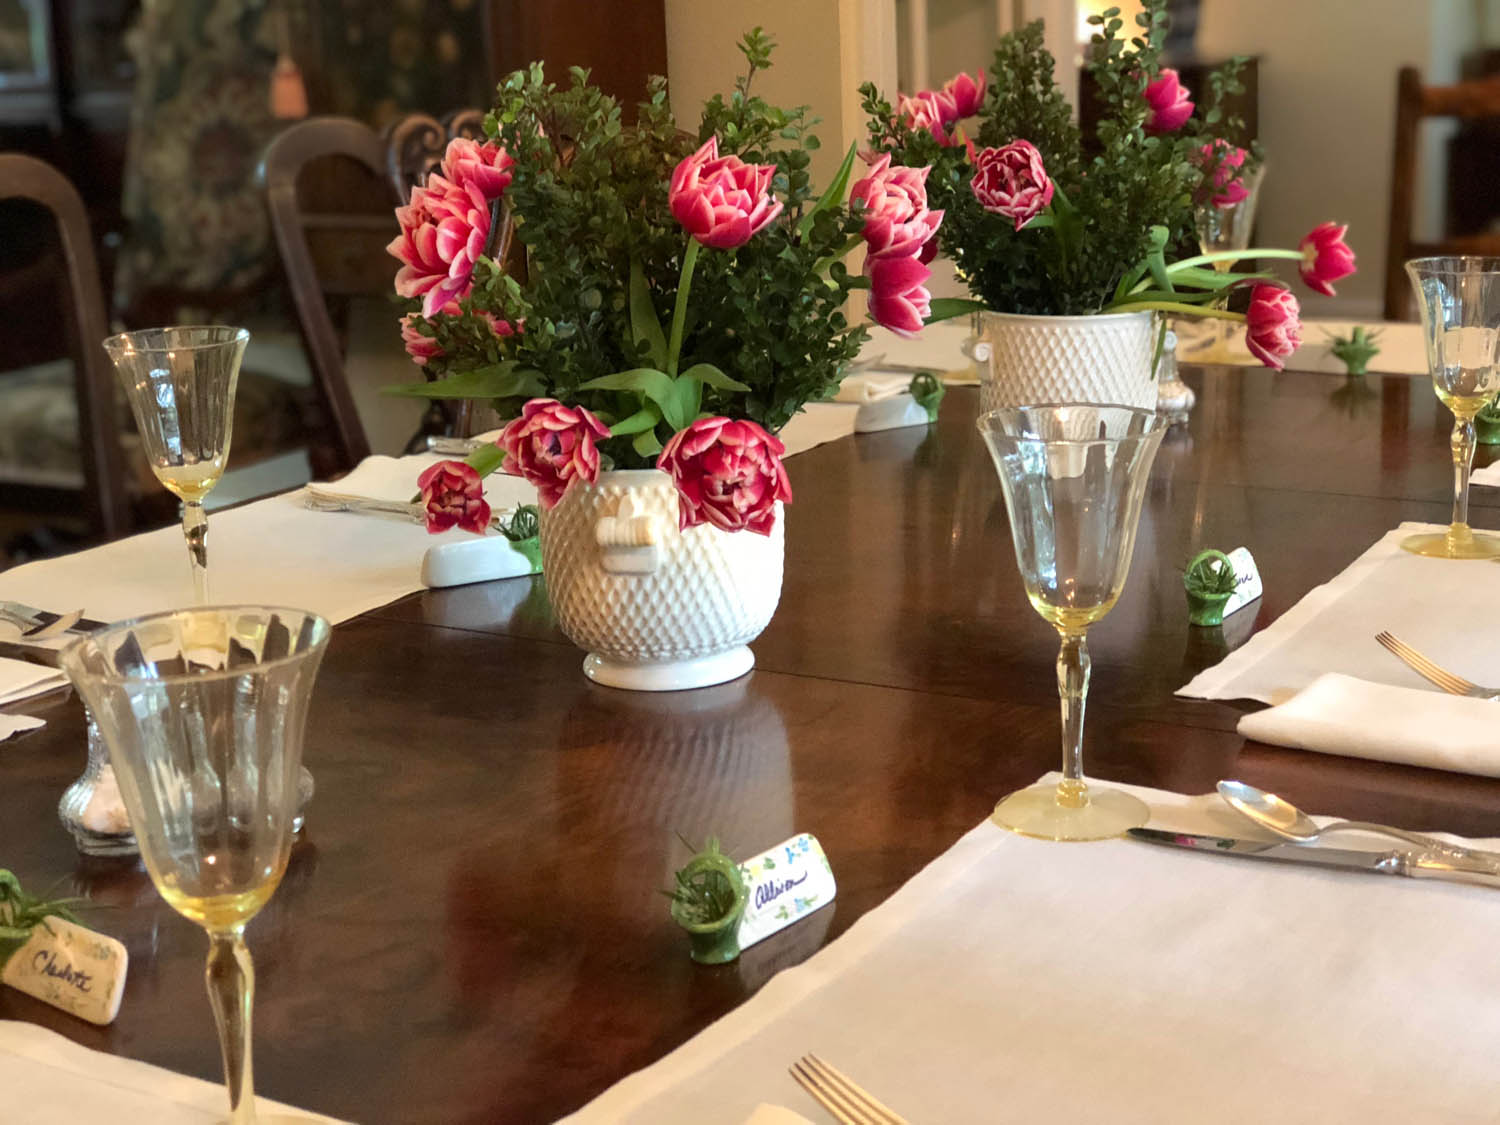 Simple elegant dining table setting with roses, goblets, and linen placemats